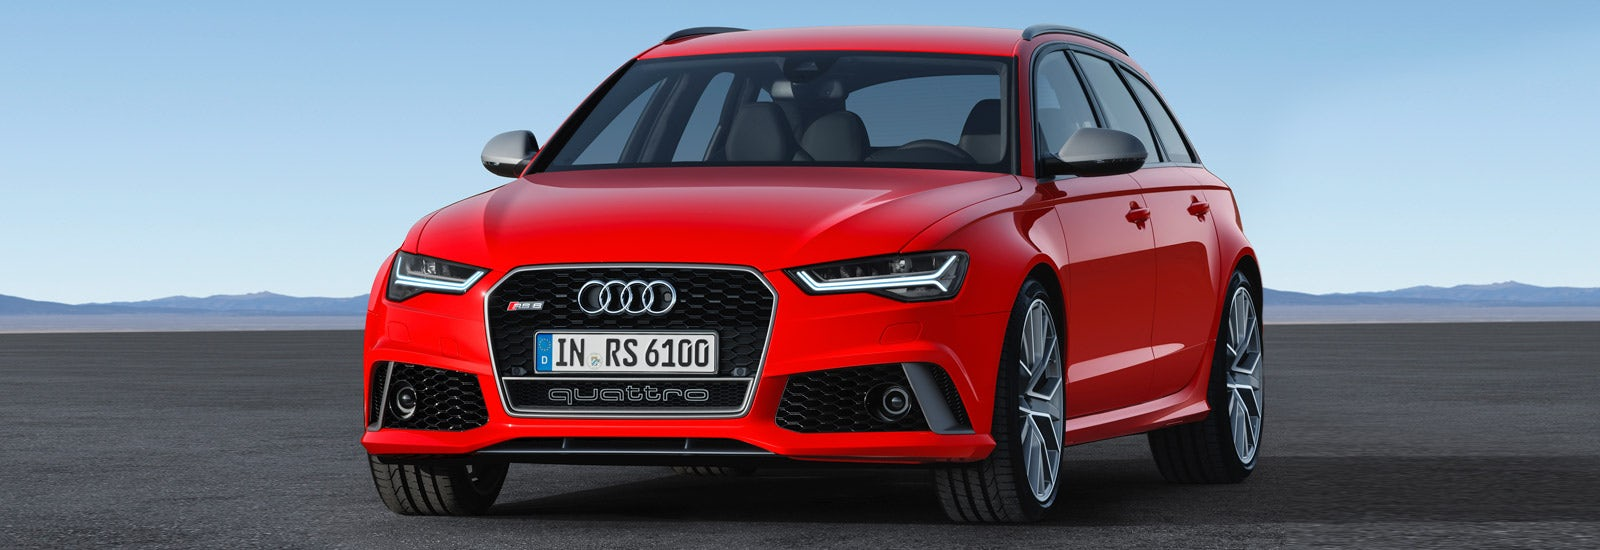 audi rs6 and rs7 performance models revealed carwow. Black Bedroom Furniture Sets. Home Design Ideas